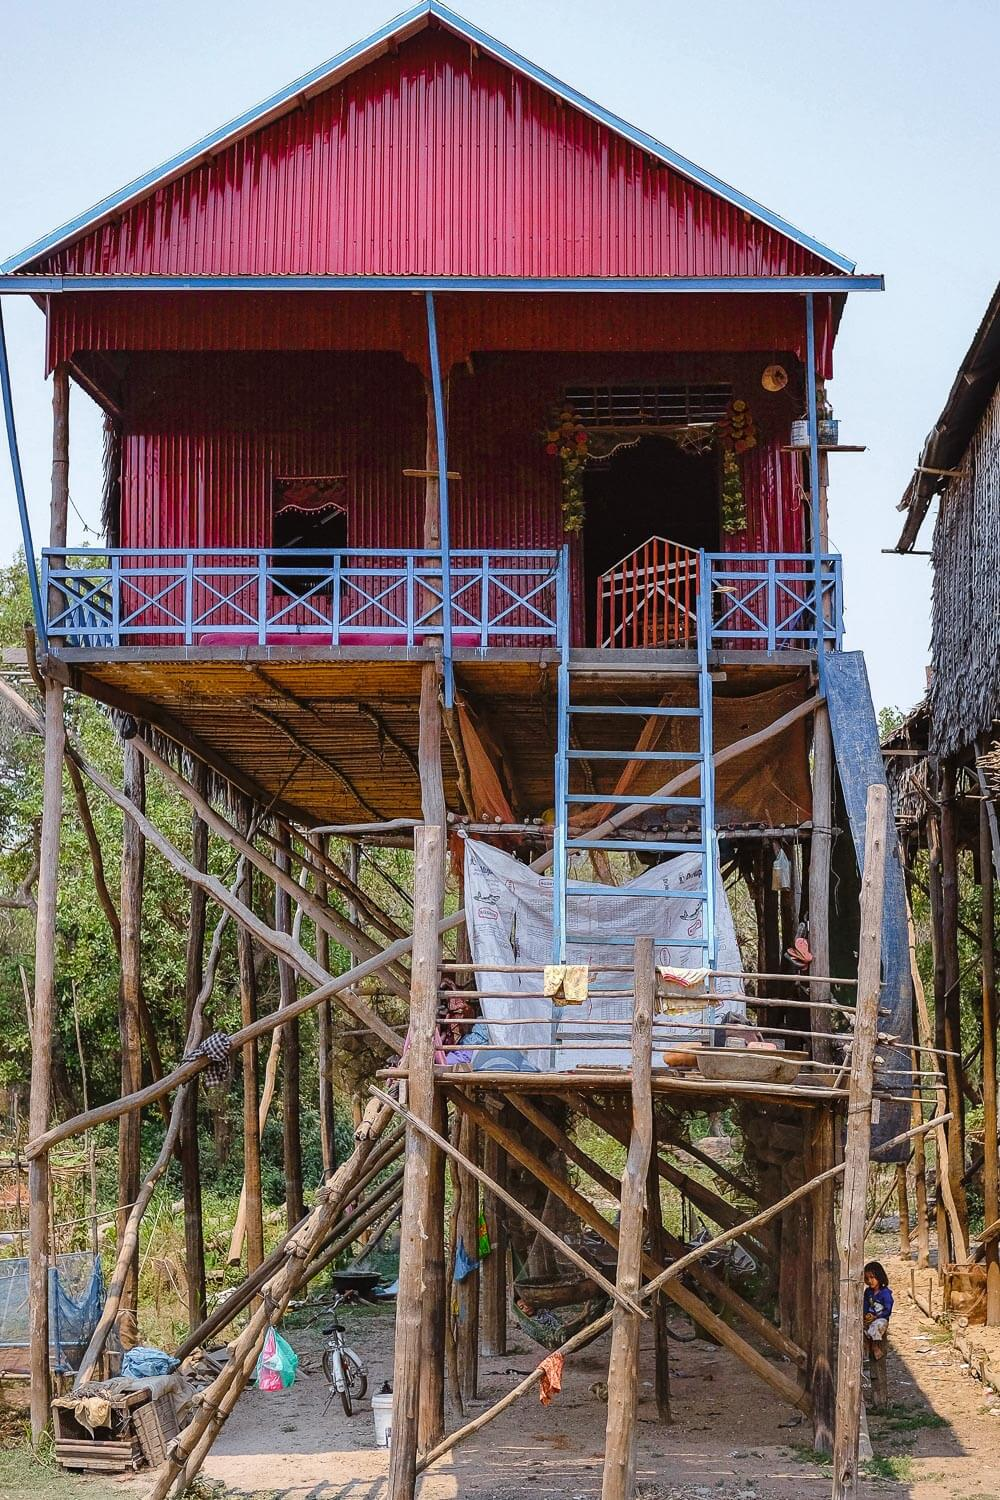 Colourful stilt houses in the Siem Reap backcountry.     #siemreap #angkorwat #travelguide #siemreapitinerary #cambodia #travelphotography #landscapephotography #fujifilm #siemreapprivatetour